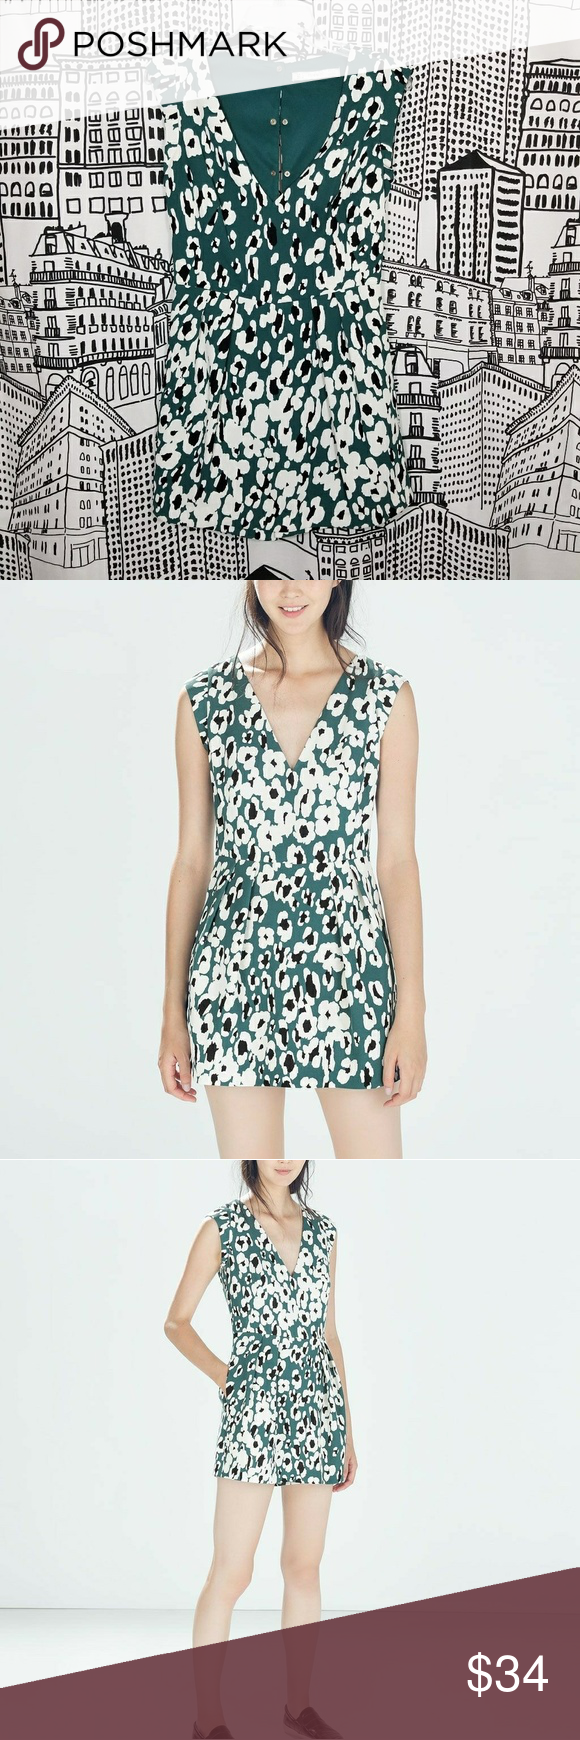 89fdb570952e Zara Printed Playsuit Cutesy little romper Dress on top with shorts on  bottom Print looks like